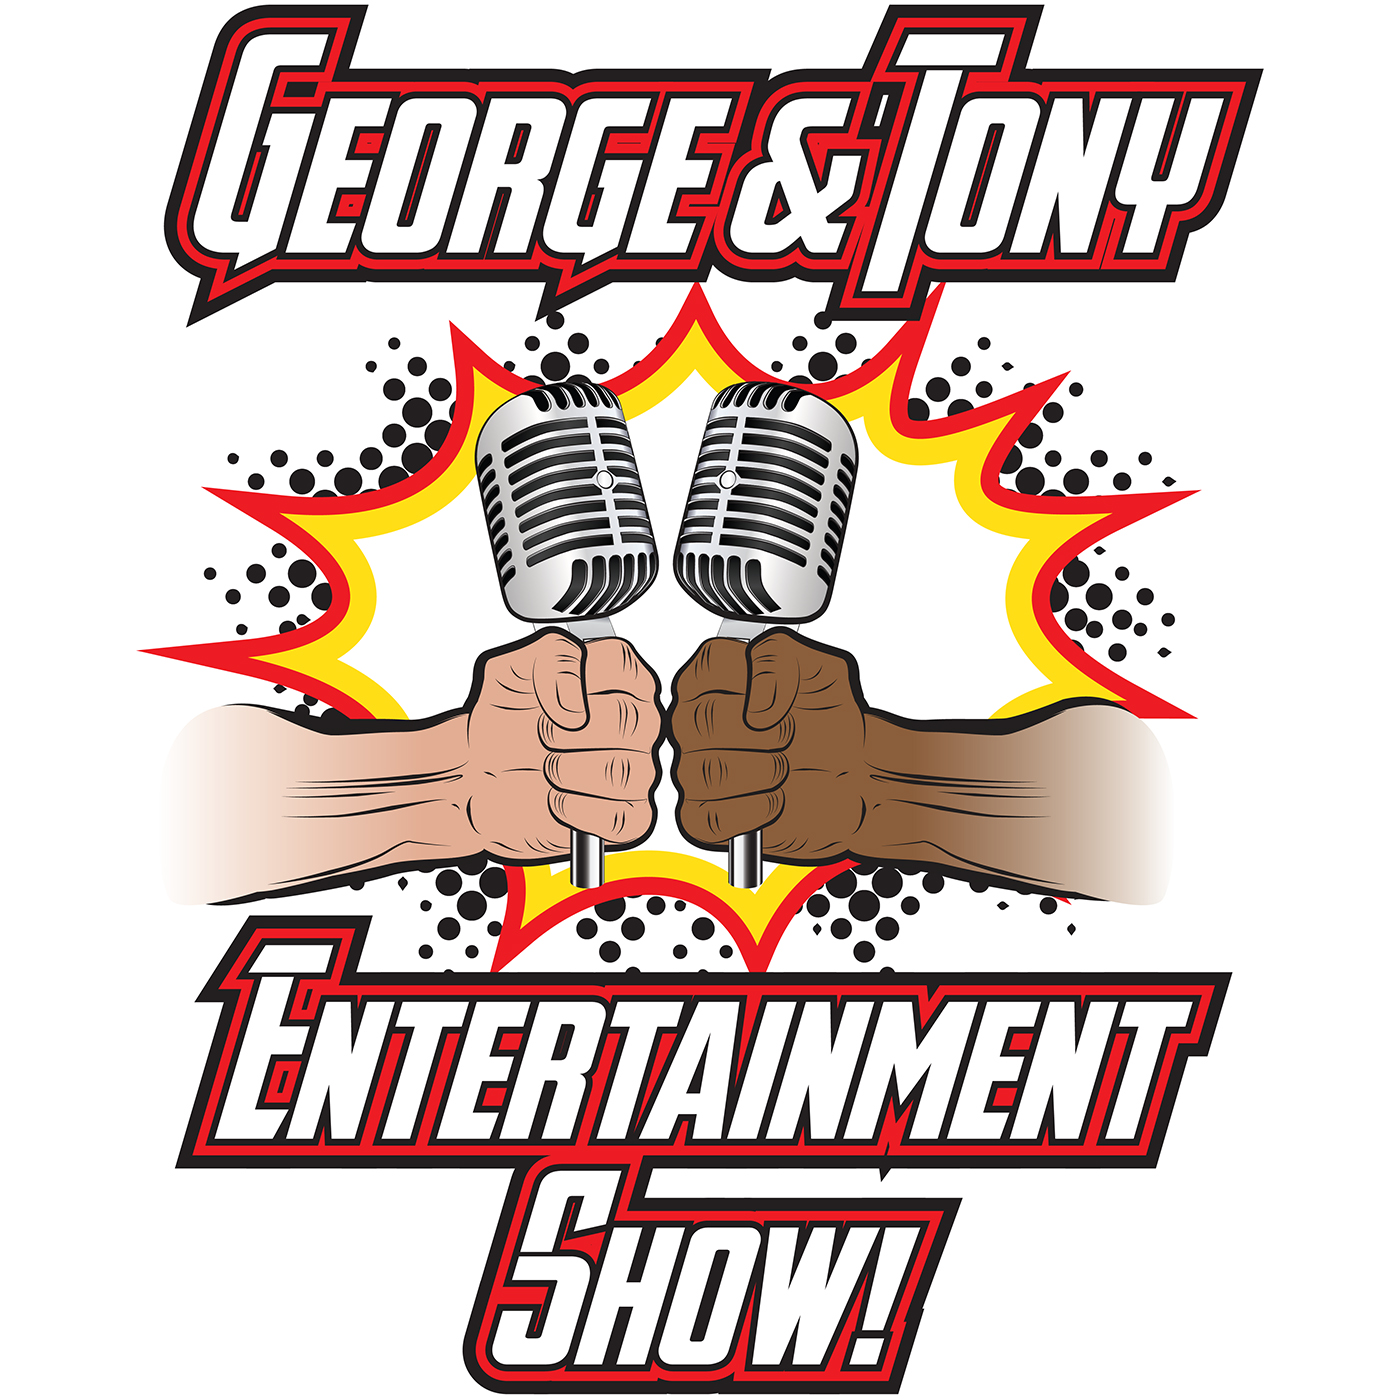 George and Tony Entertainment Show #121